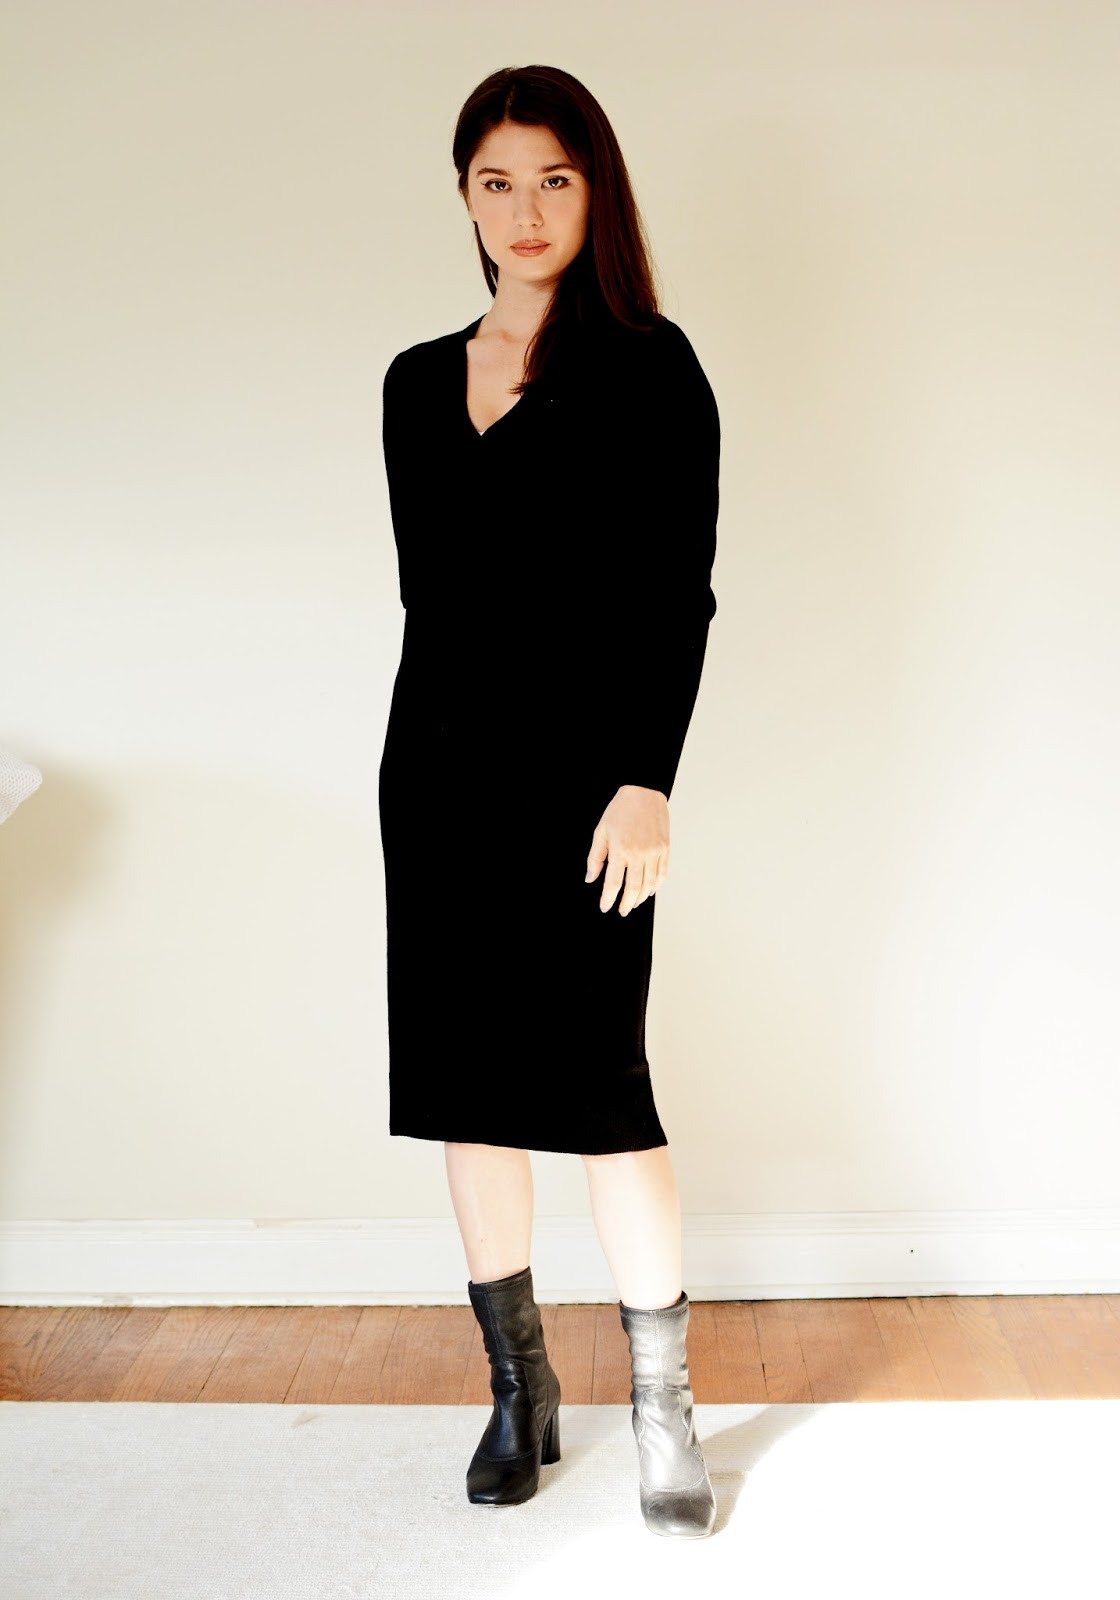 Everlane Cashmere V-Neck Midi Dress review photos sizing info